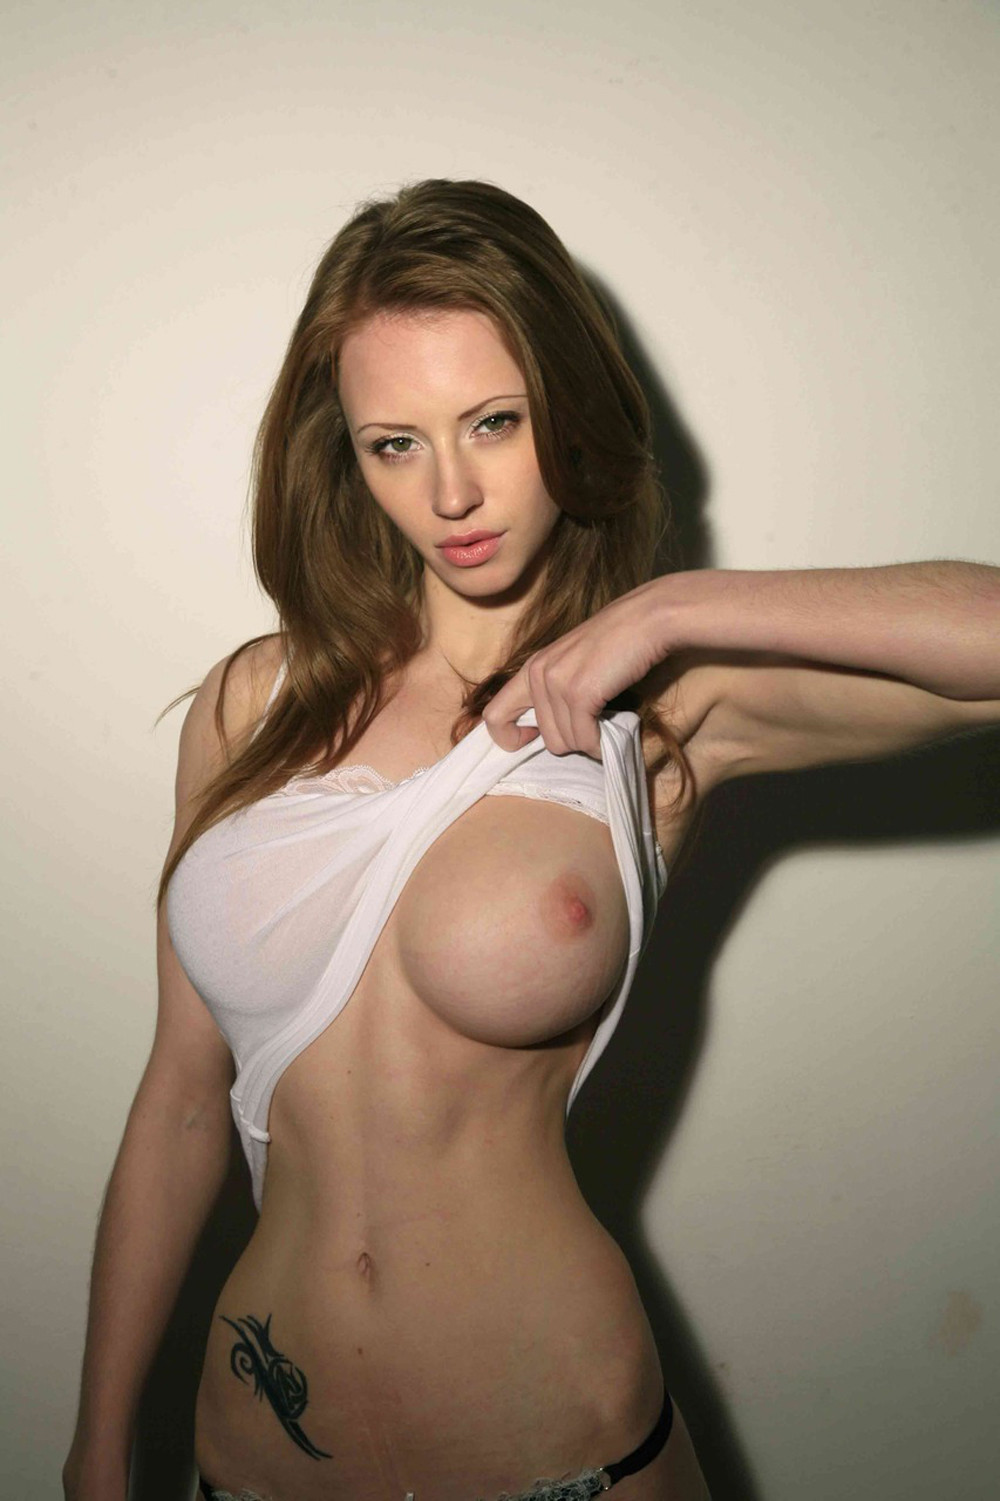 Skinny with big boobs